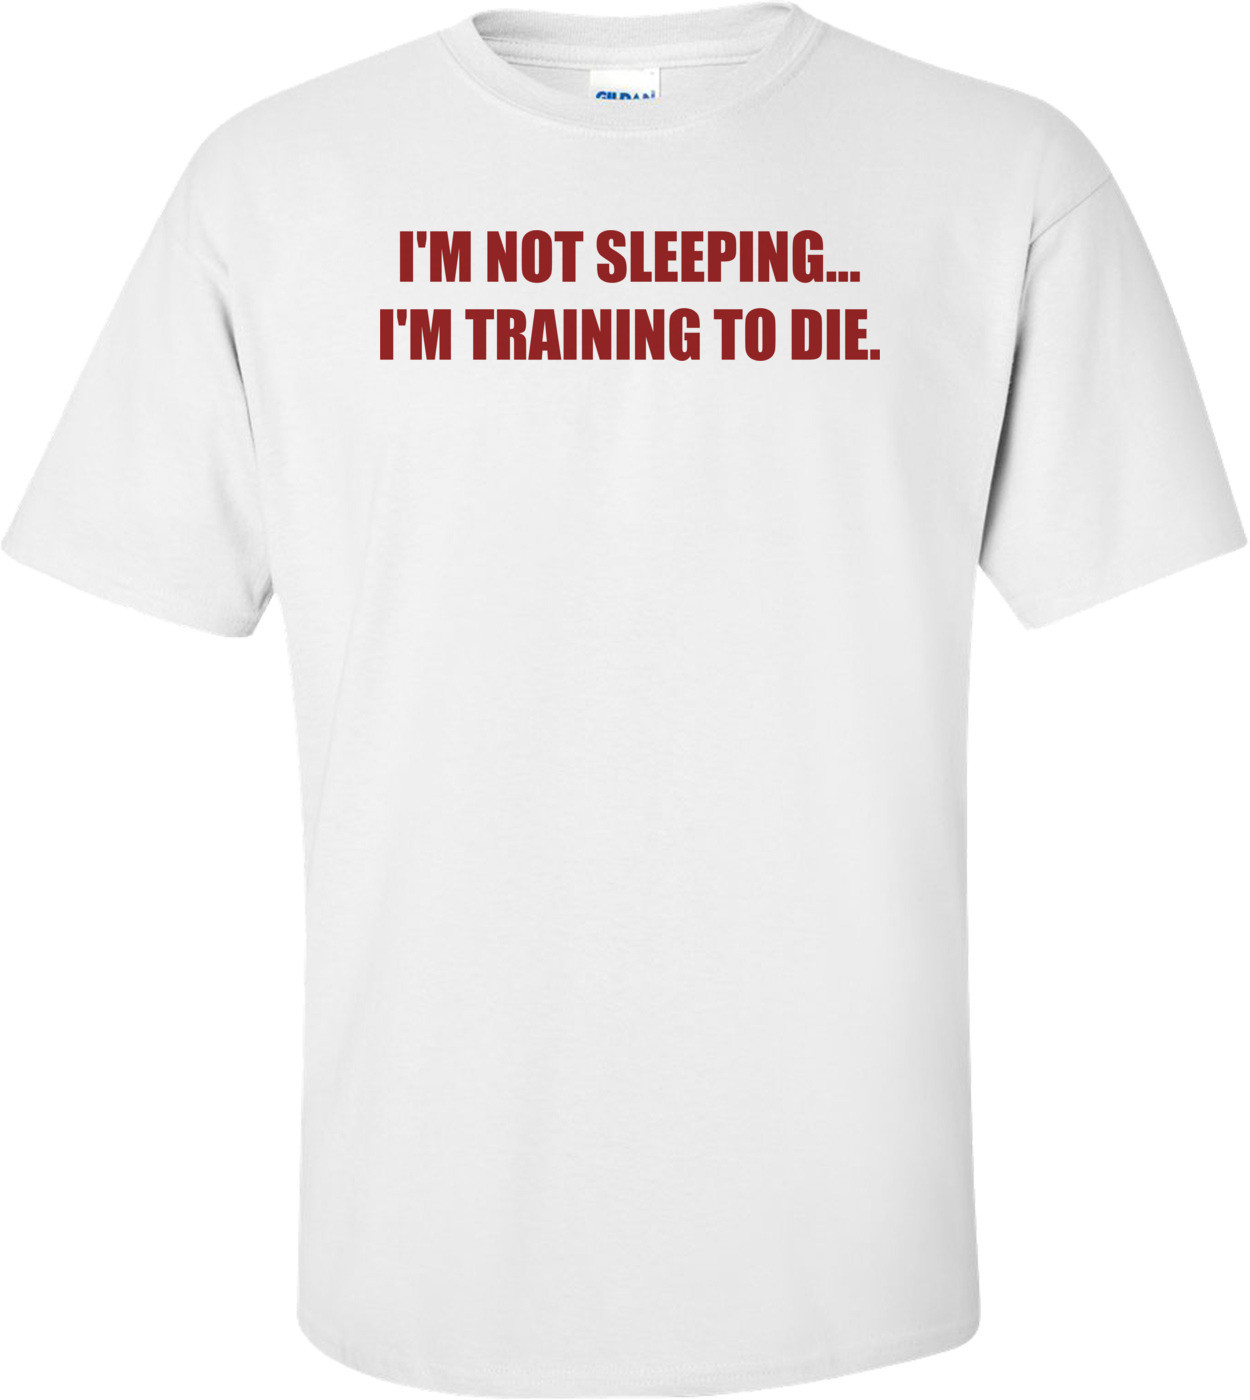 I'M NOT SLEEPING. I'M TRAINING TO DIE. Shirt